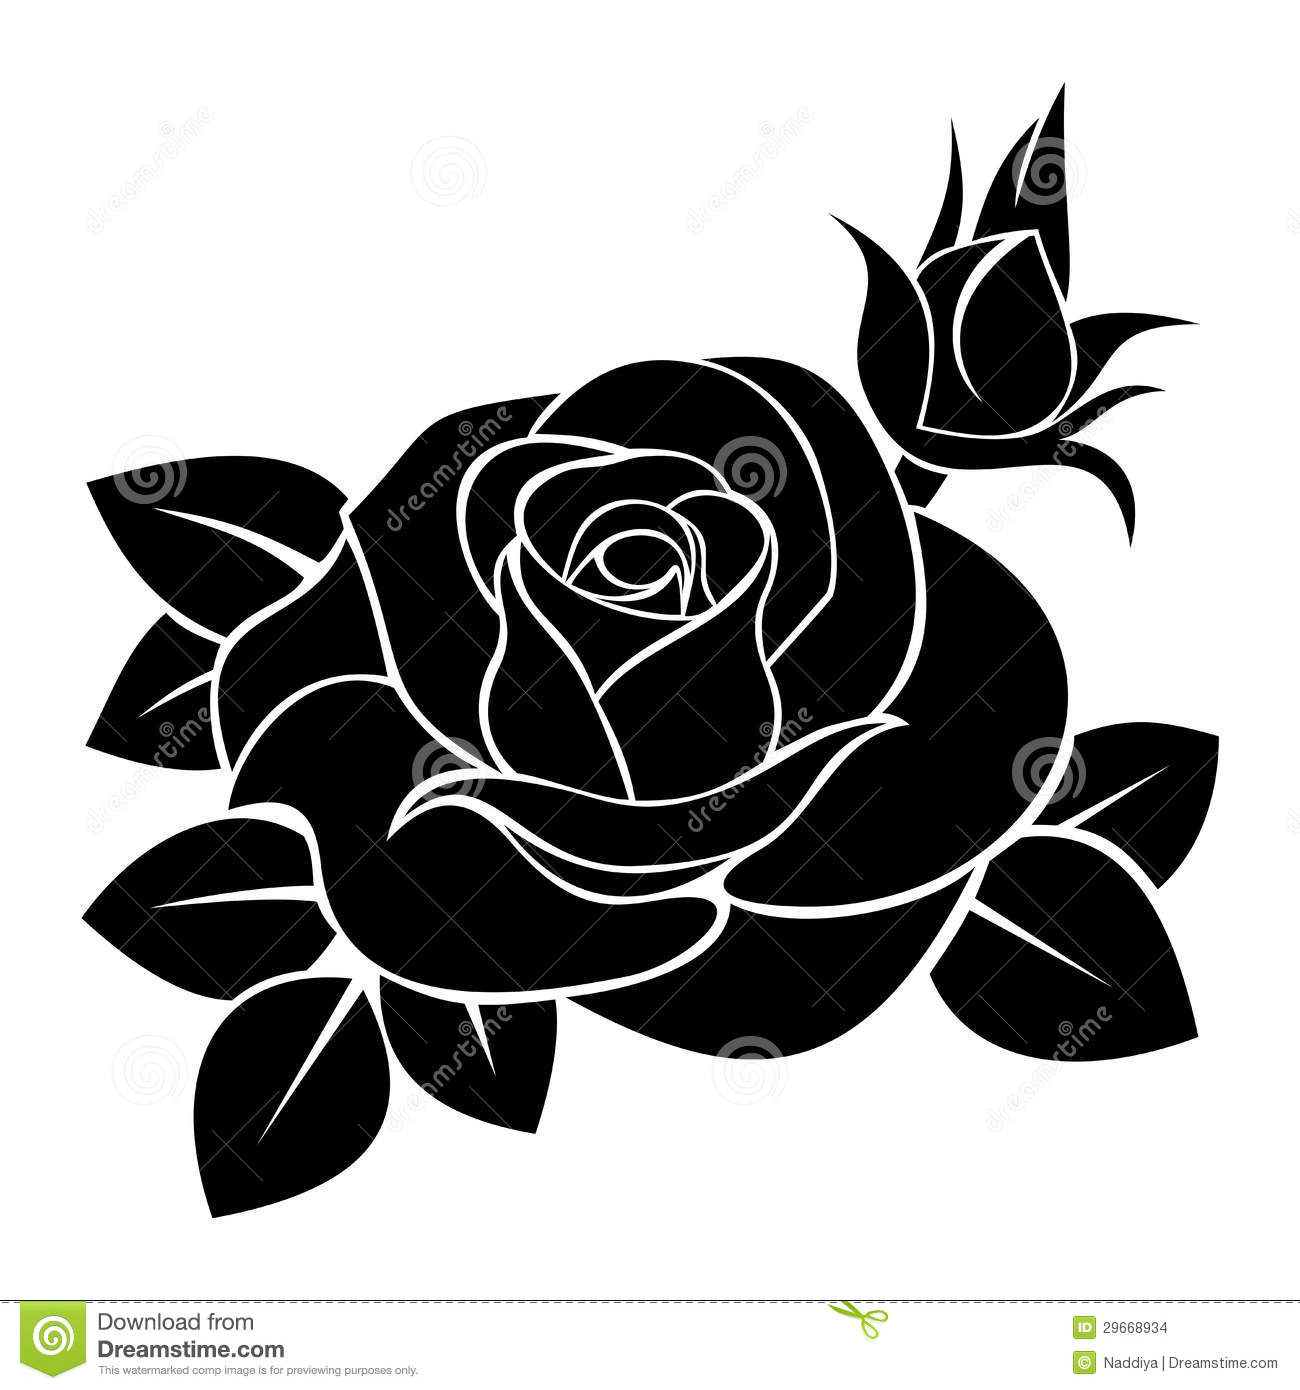 Vector Illustration Of Black Silhouette Rose With Rosebud And Leaves On A White Background